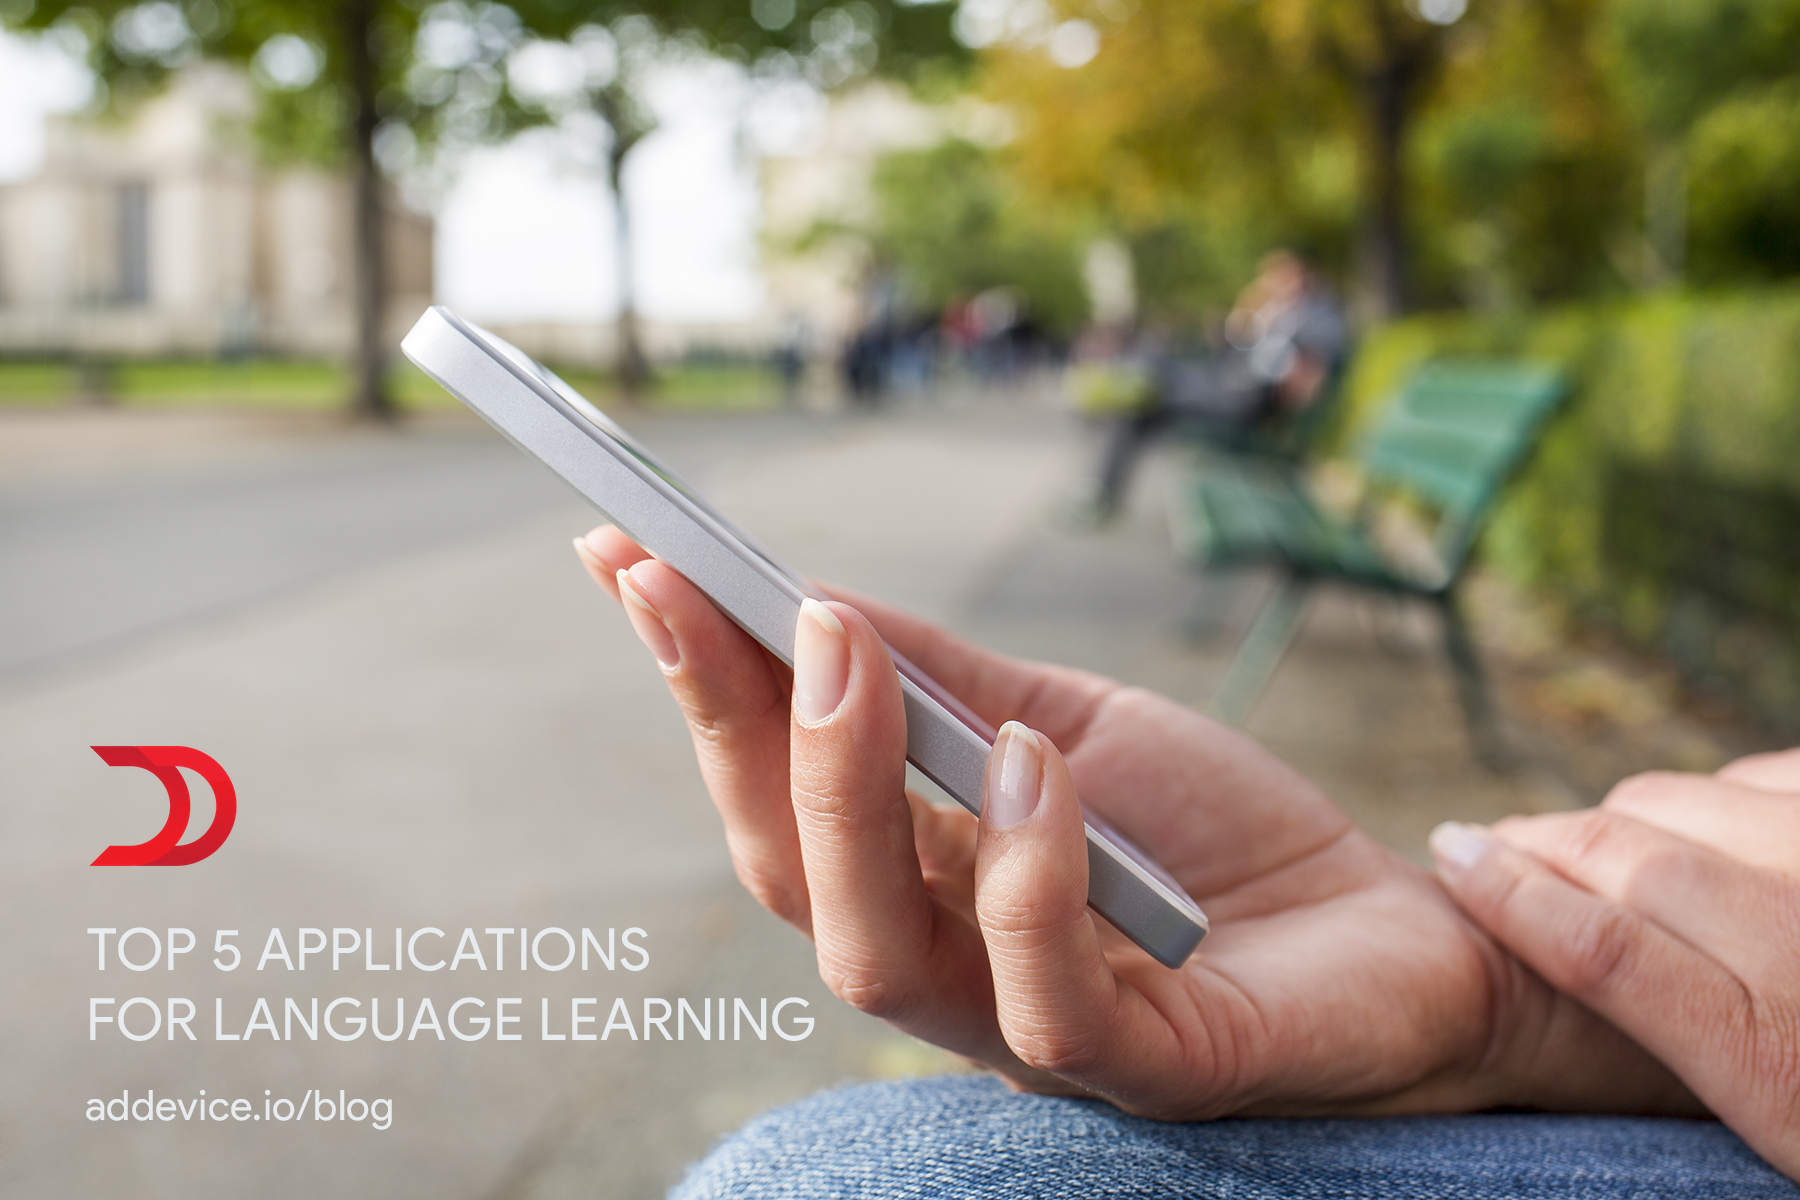 Which mobile apps are the most useful for language learning